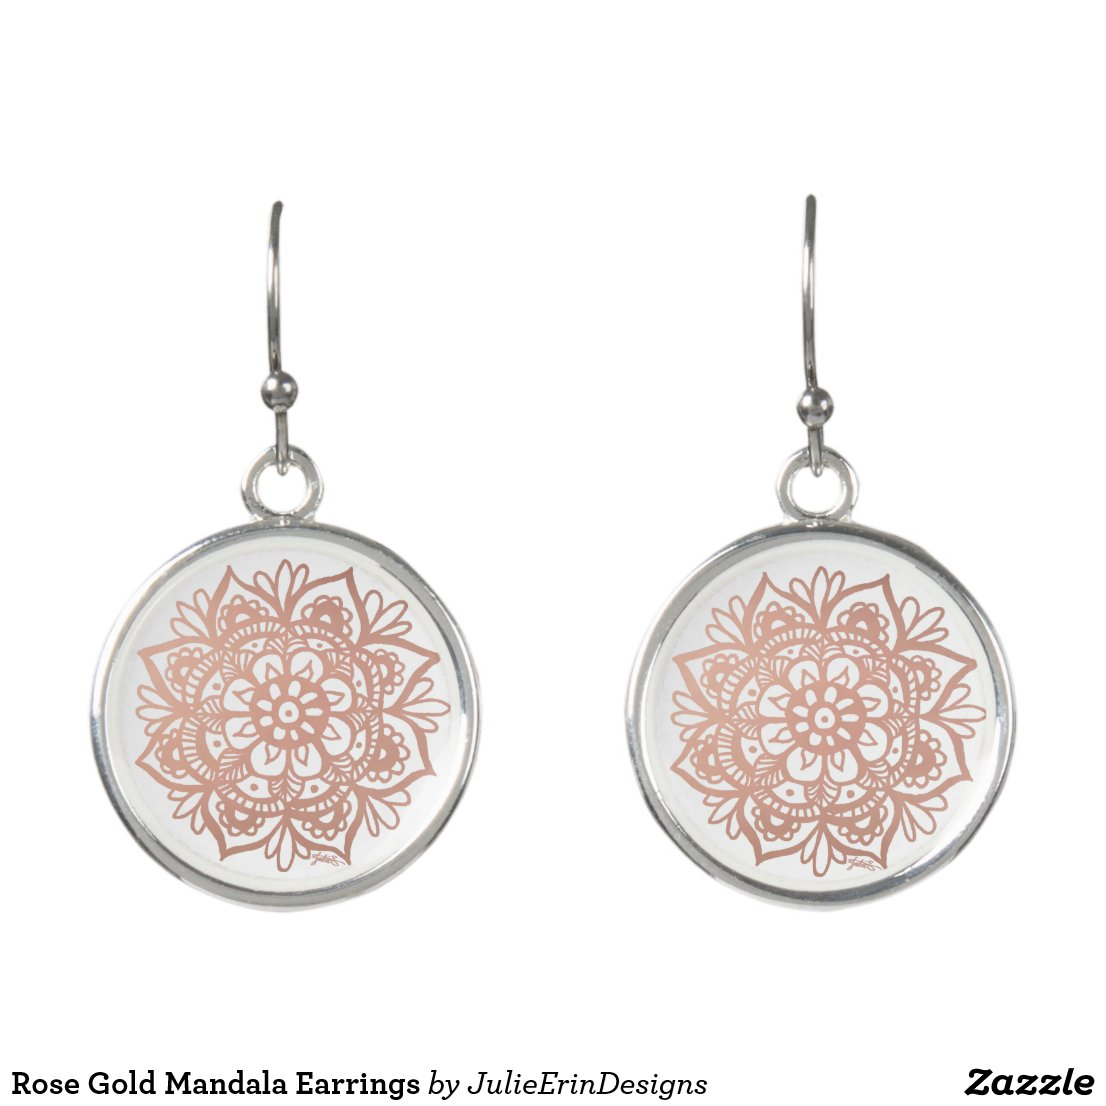 Rose Gold Mandala Earrings